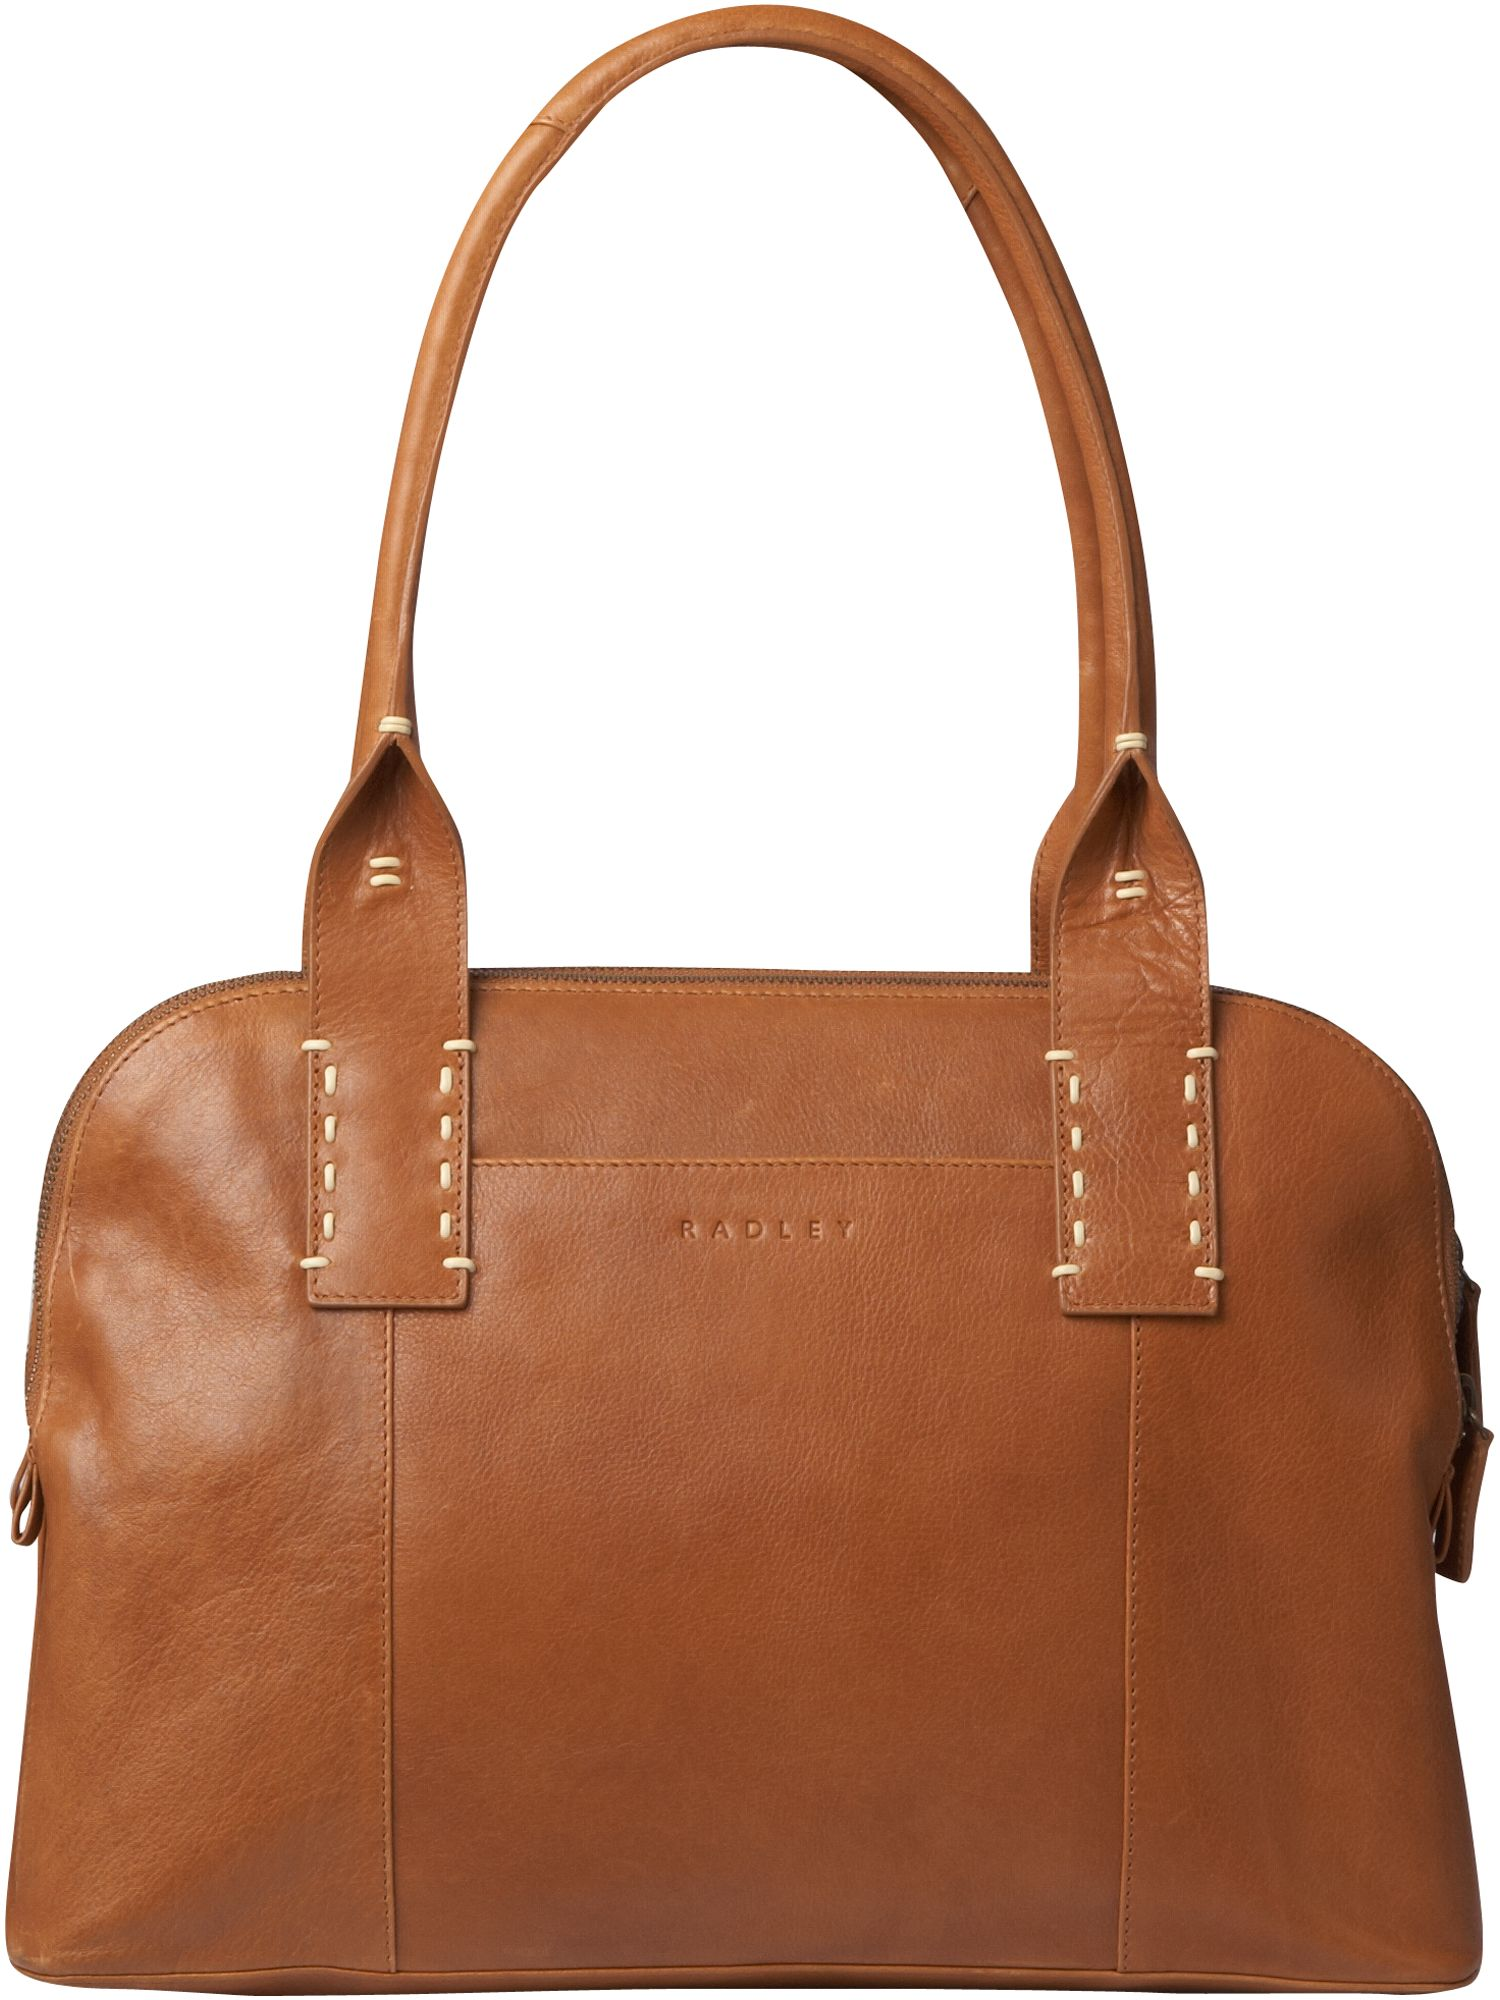 Tewkesbury Large leather dome bag.